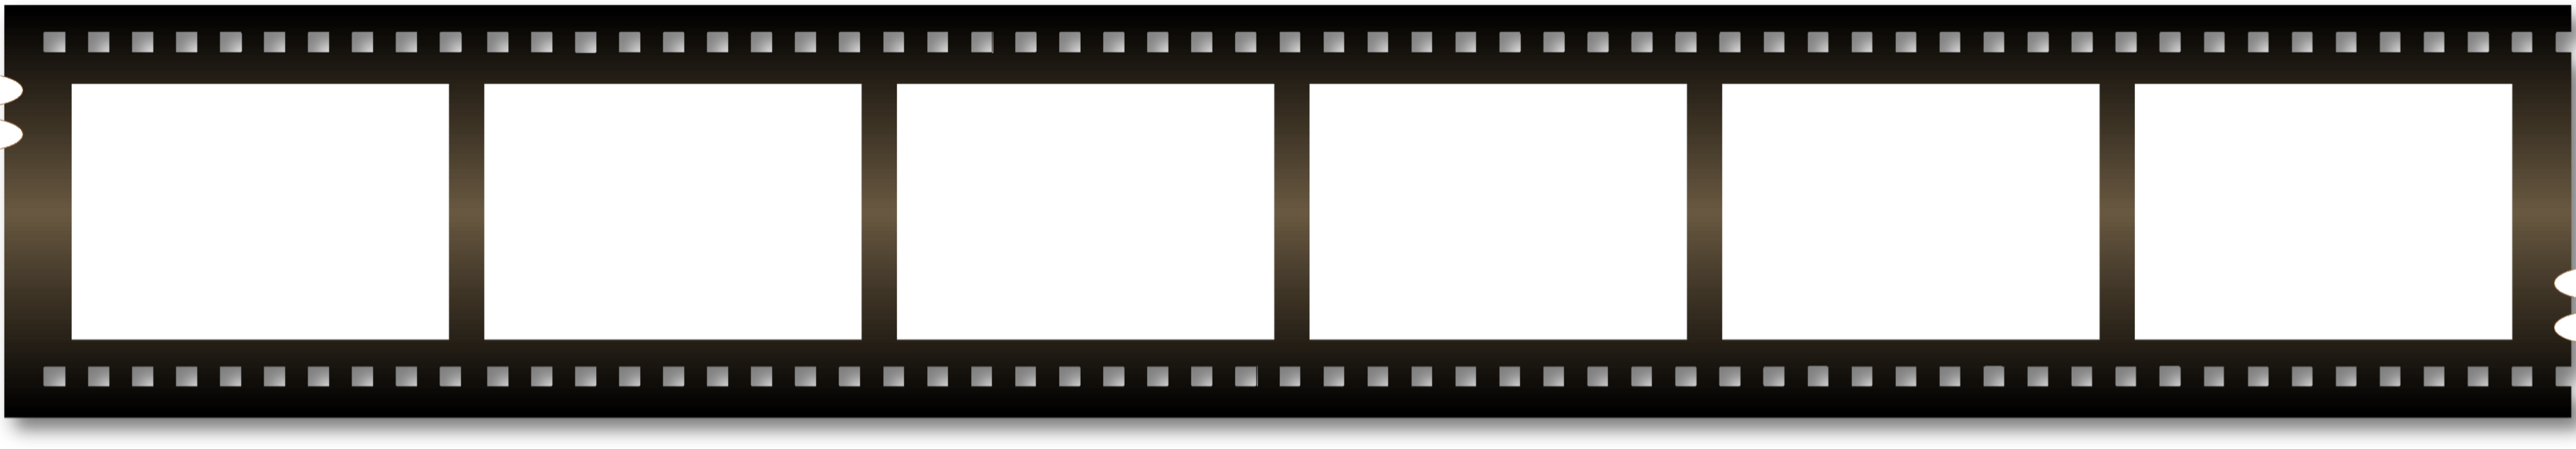 Movie reel gallery for blank film strip clip art image